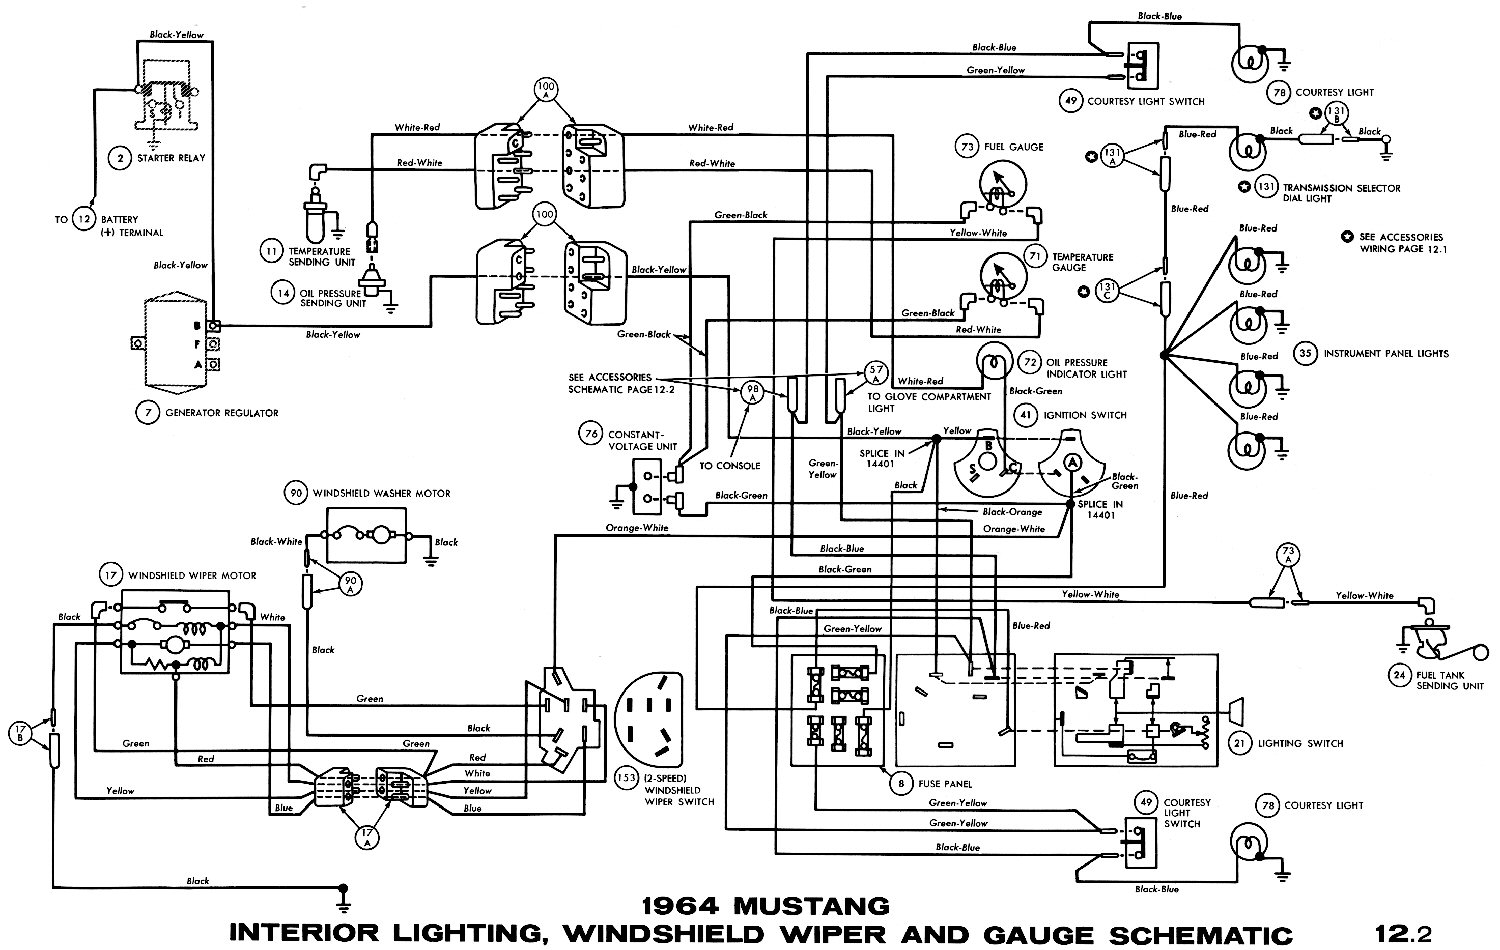 1965 mustang ignition wiring diagram wiring diagram. Black Bedroom Furniture Sets. Home Design Ideas